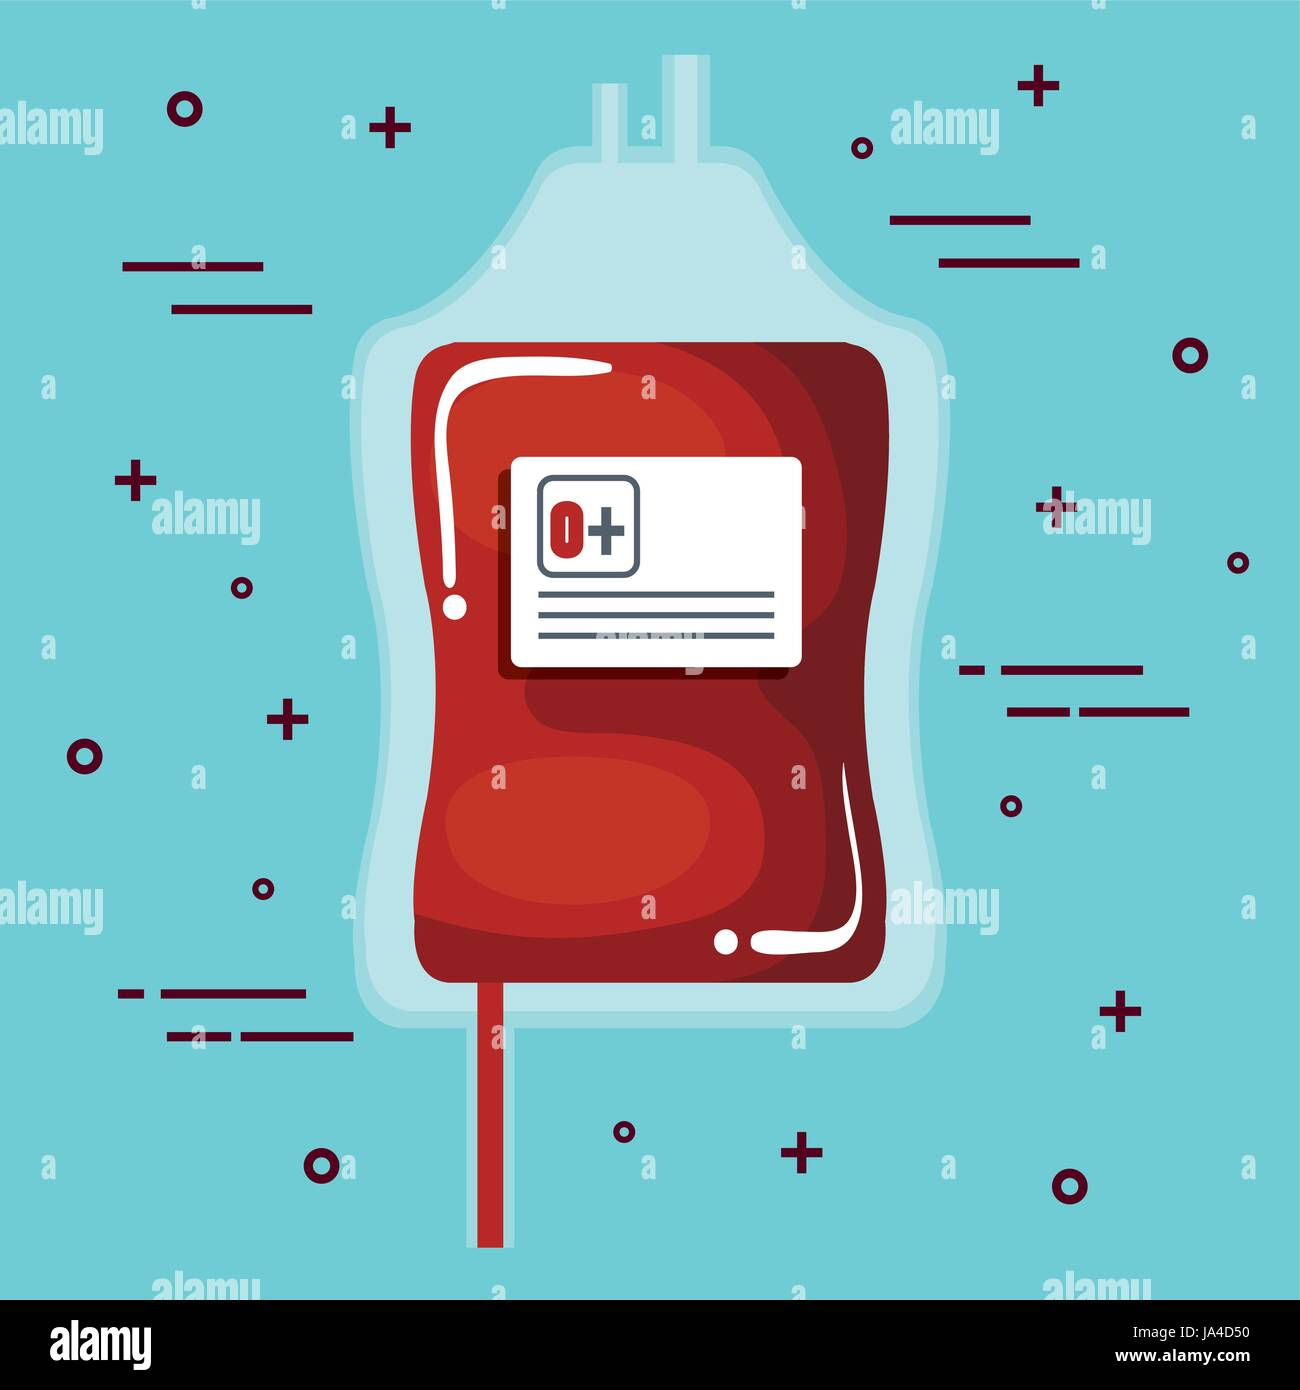 Donating blood design - Stock Image